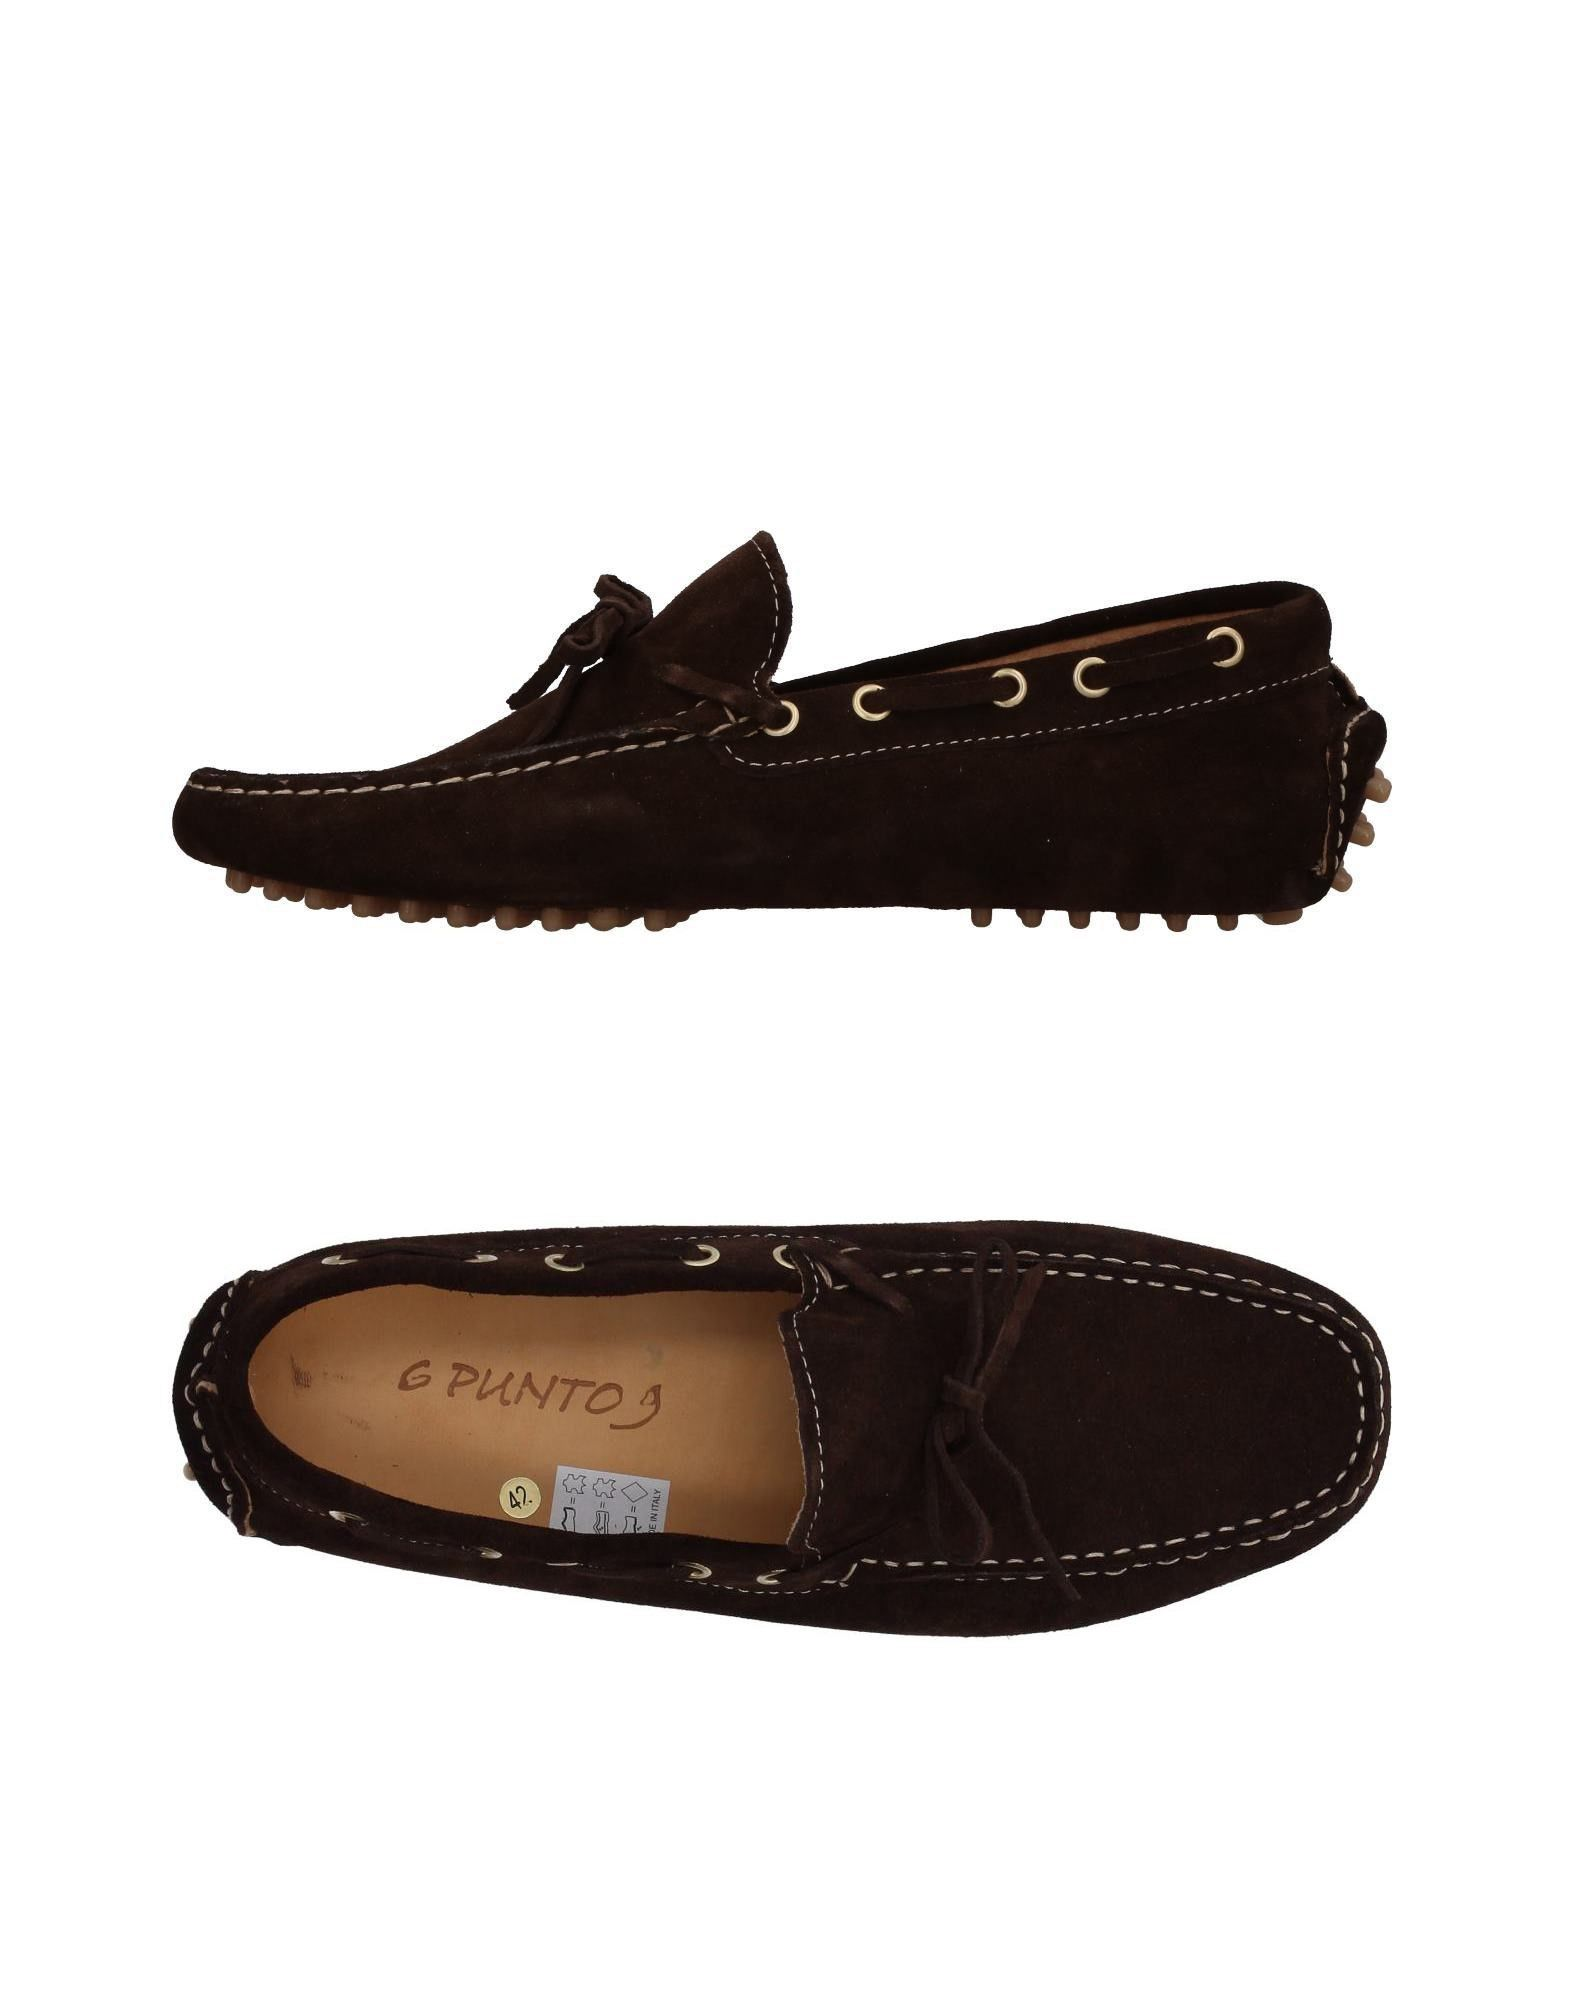 cheap marketable 6 PUNTO 9 Laced shoes buy cheap Cheapest free shipping official buy cheap Inexpensive yFprOec2yf